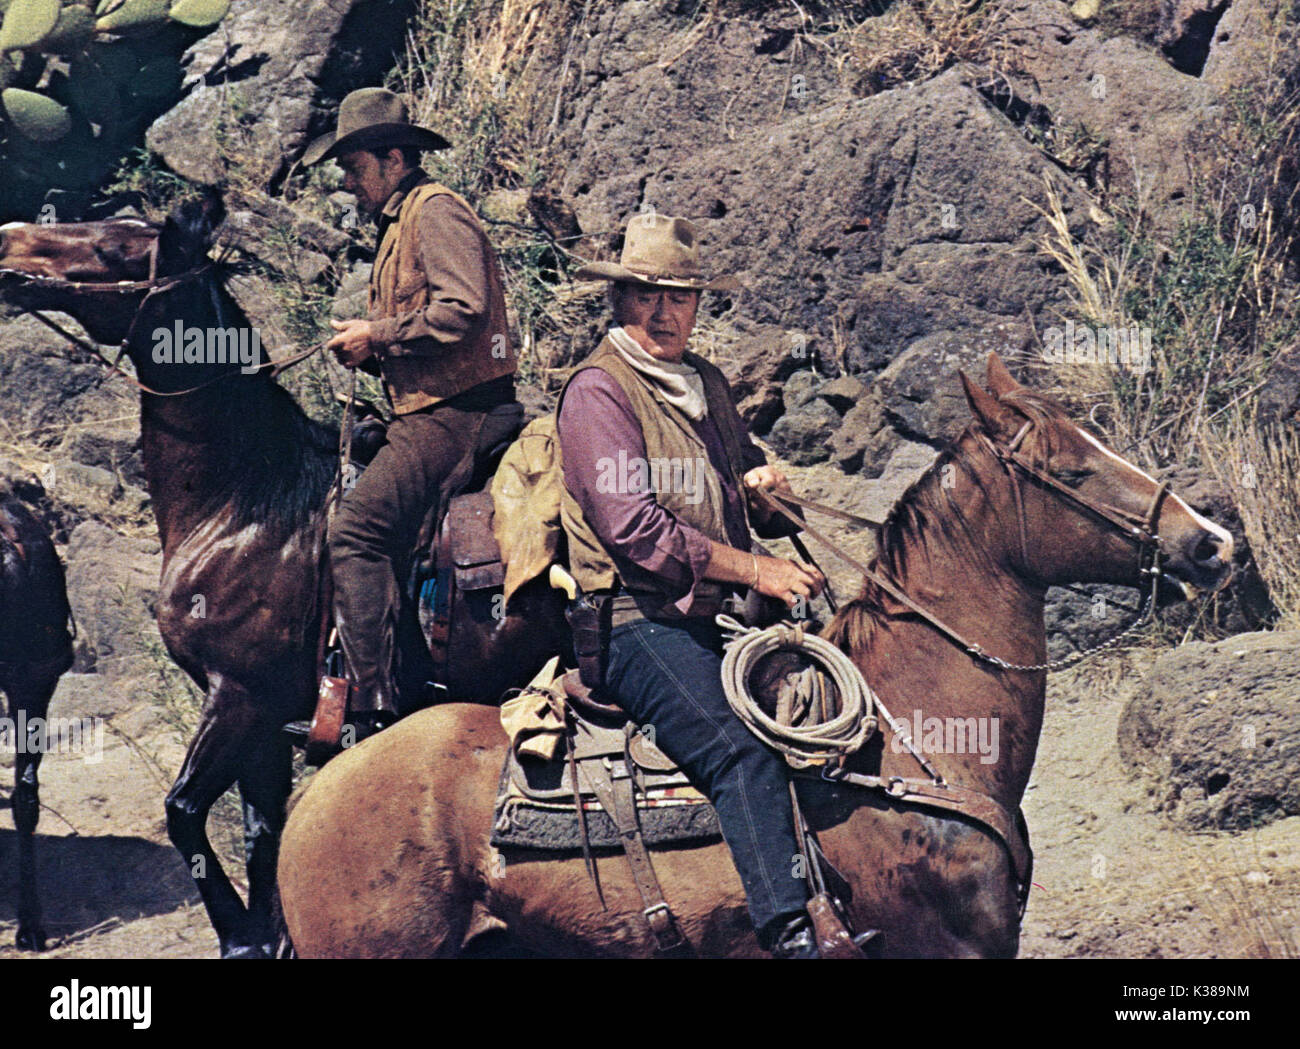 THE TRAIN ROBBERS ROD TAYLOR AND JOHN WAYNE A WARNER BROS FILM     Date: 1973 - Stock Image